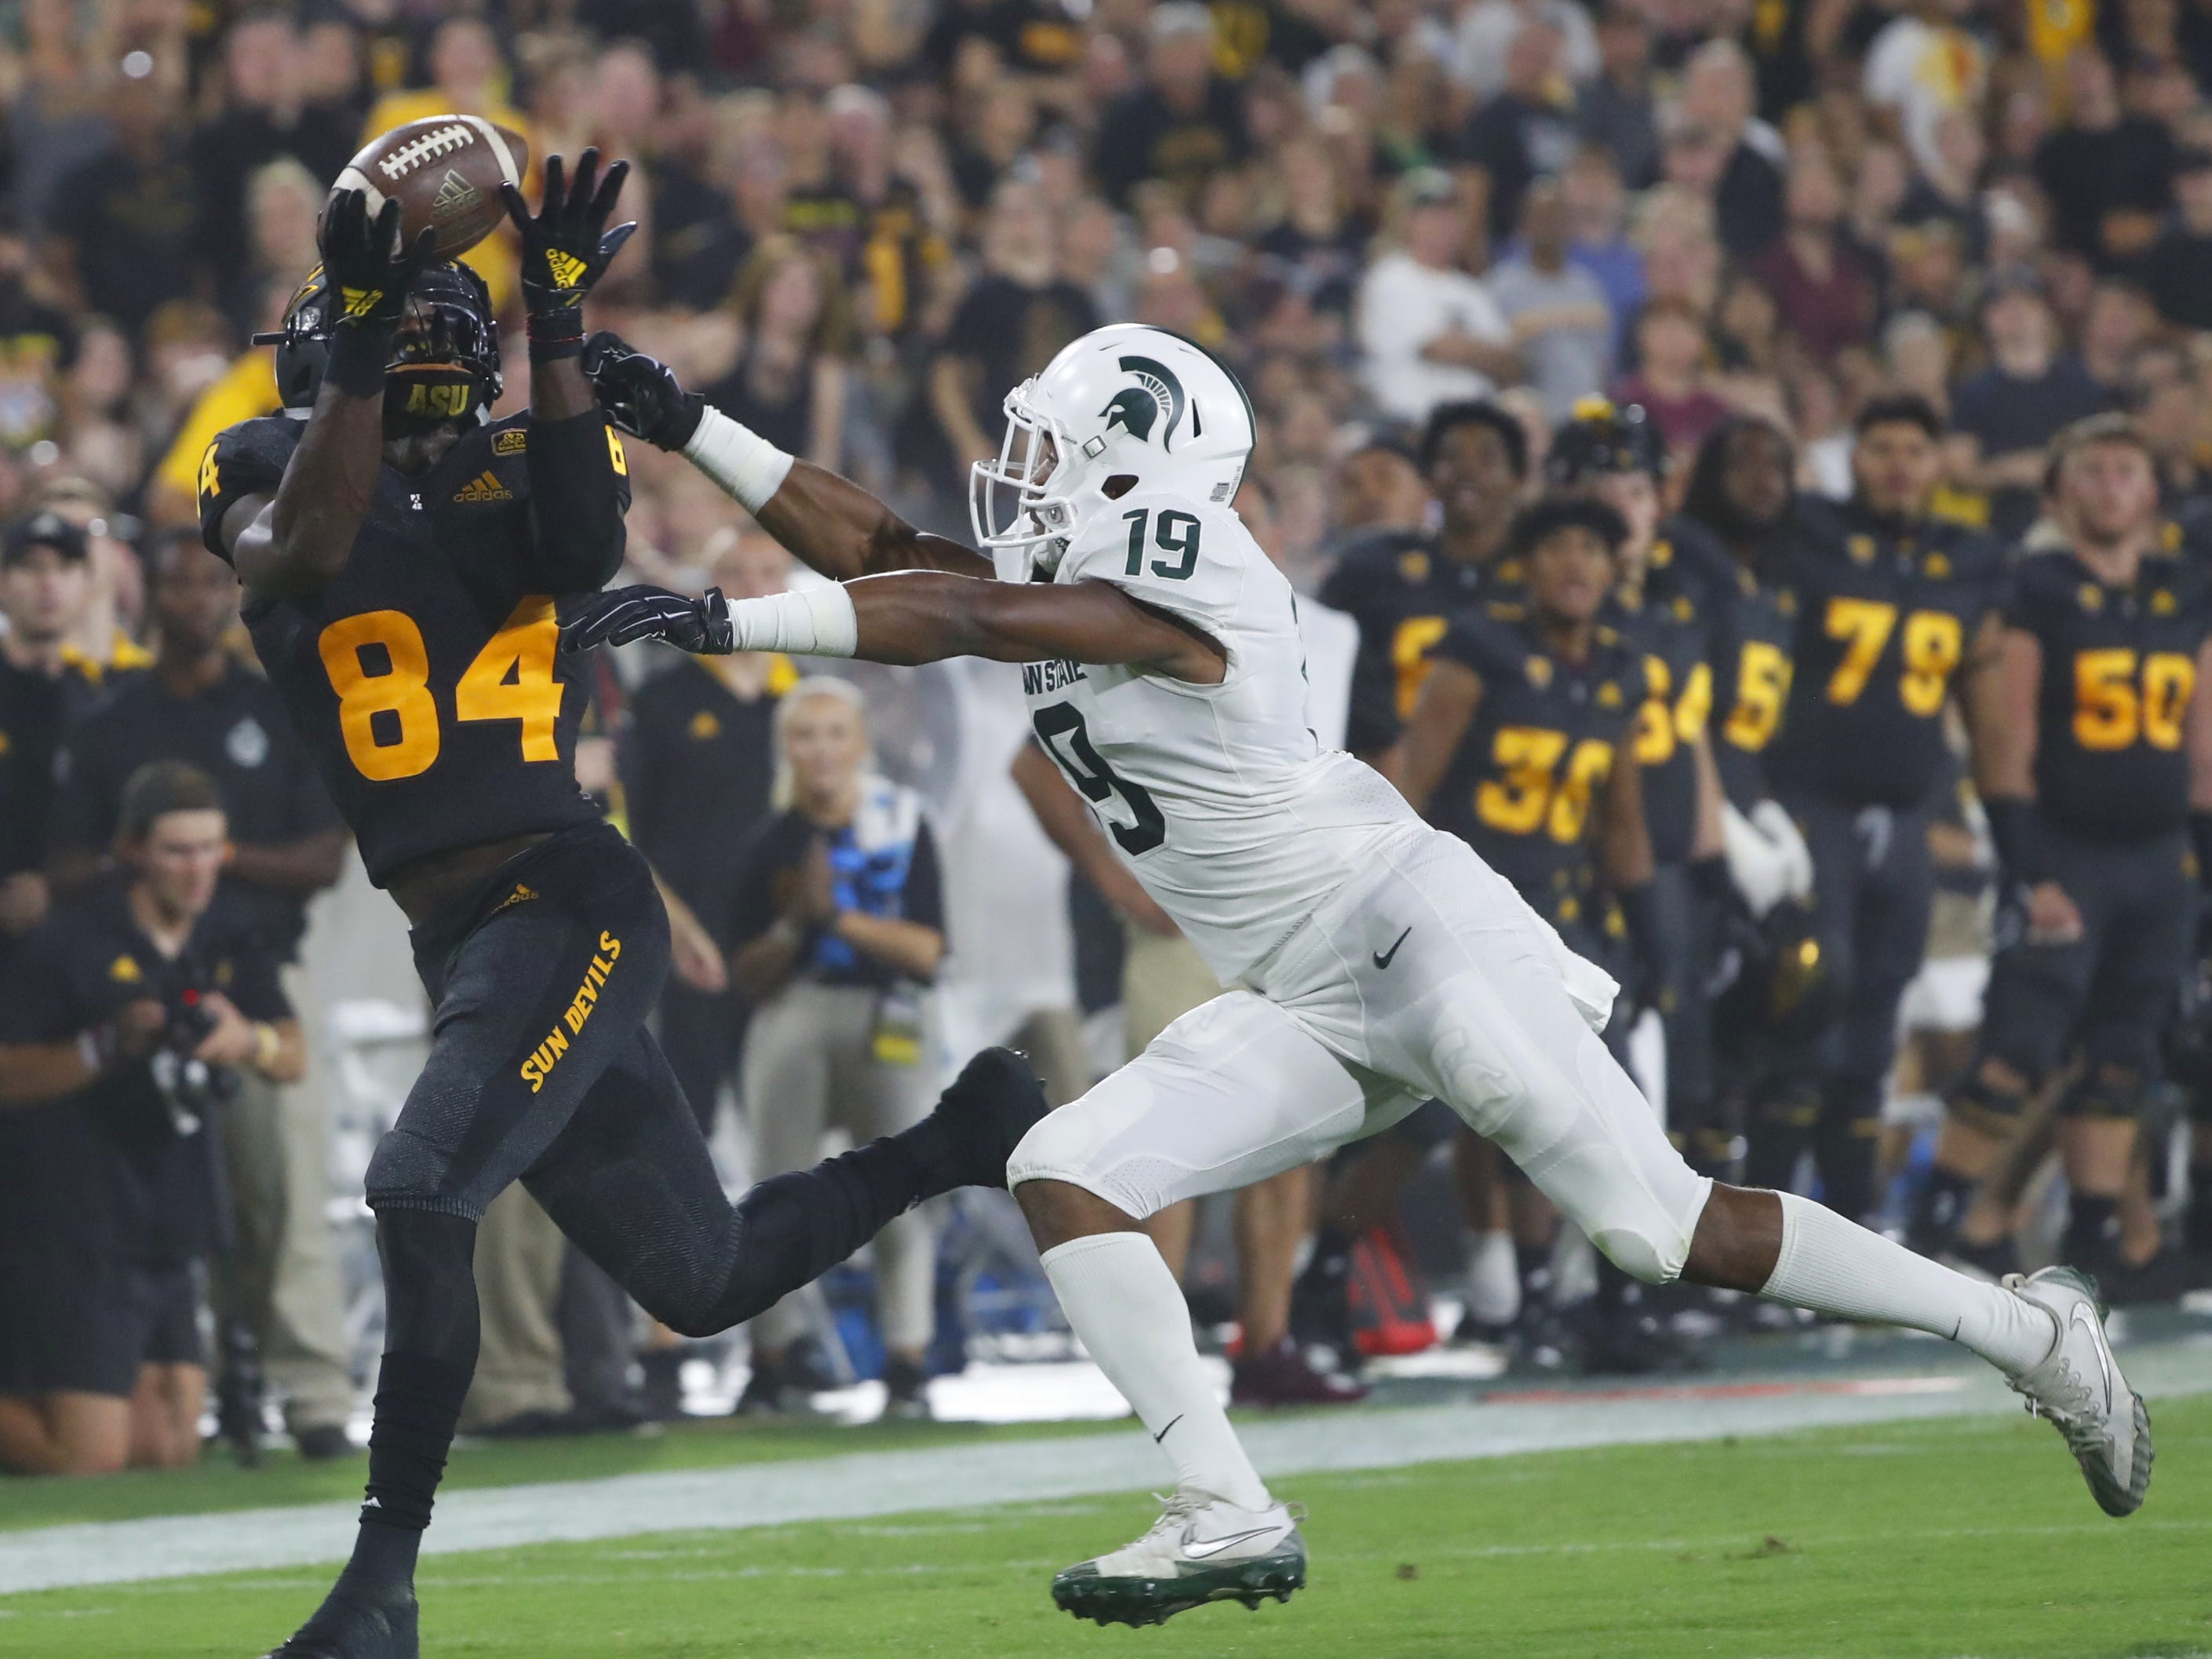 Arizona State Sun Devils wide receiver Frank Darby (84) tries to make a catch against Michigan State's Josh Butler (19) during the third quarter at Sun Devil Stadium in Tempe, Ariz. on Sept. 8, 2018.